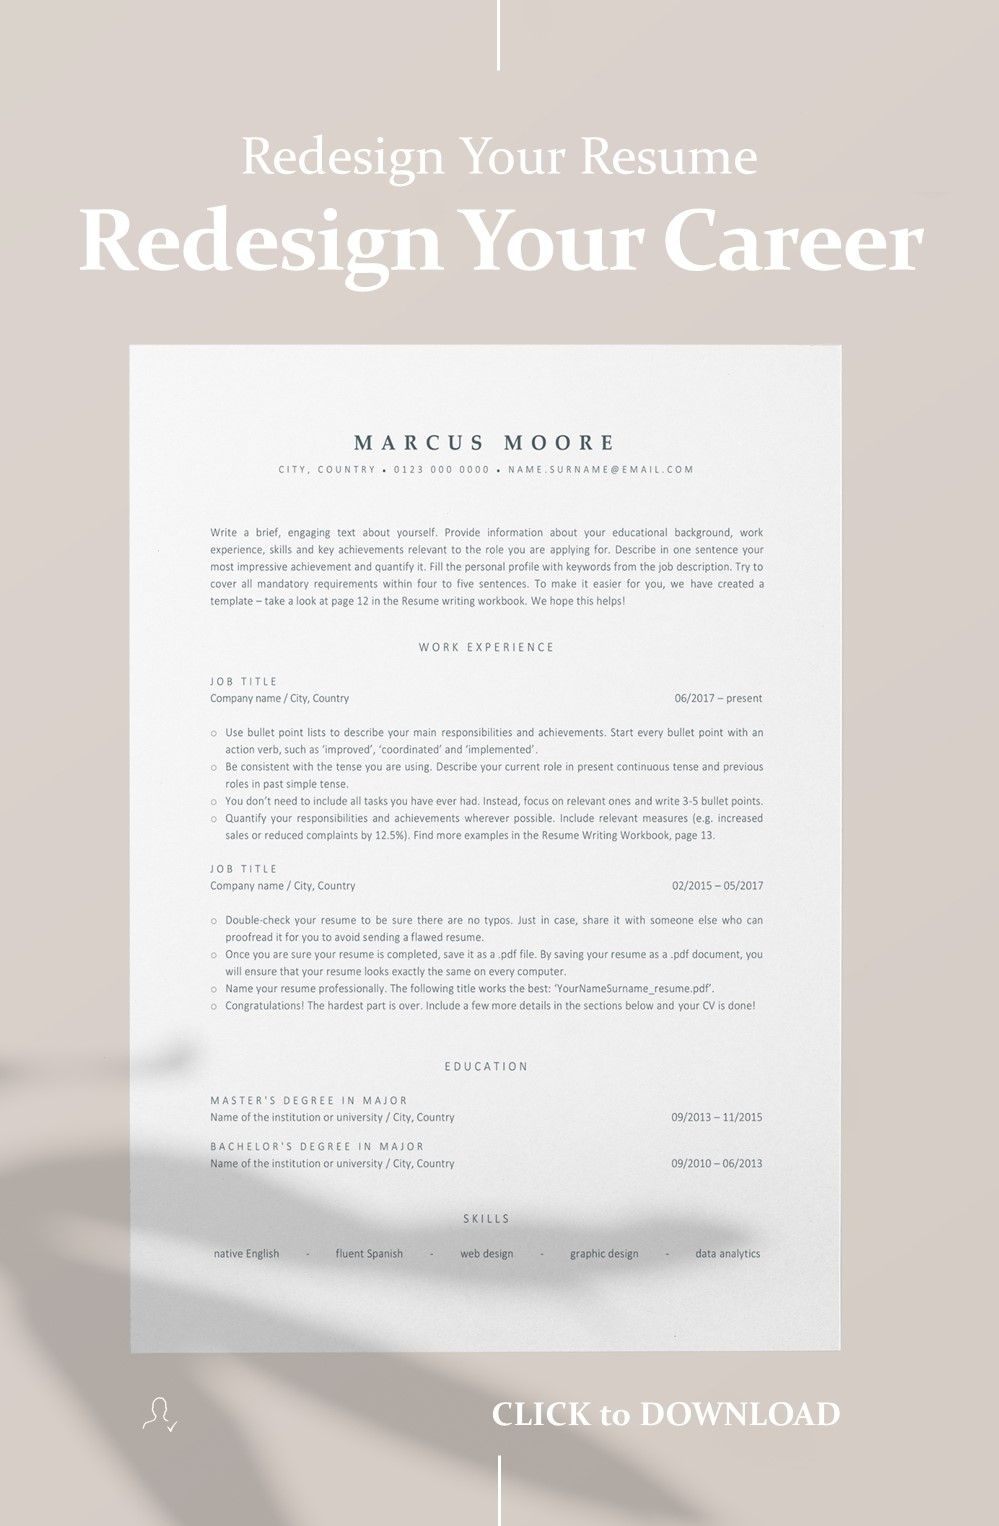 A perfect resume for modern professionals looking to